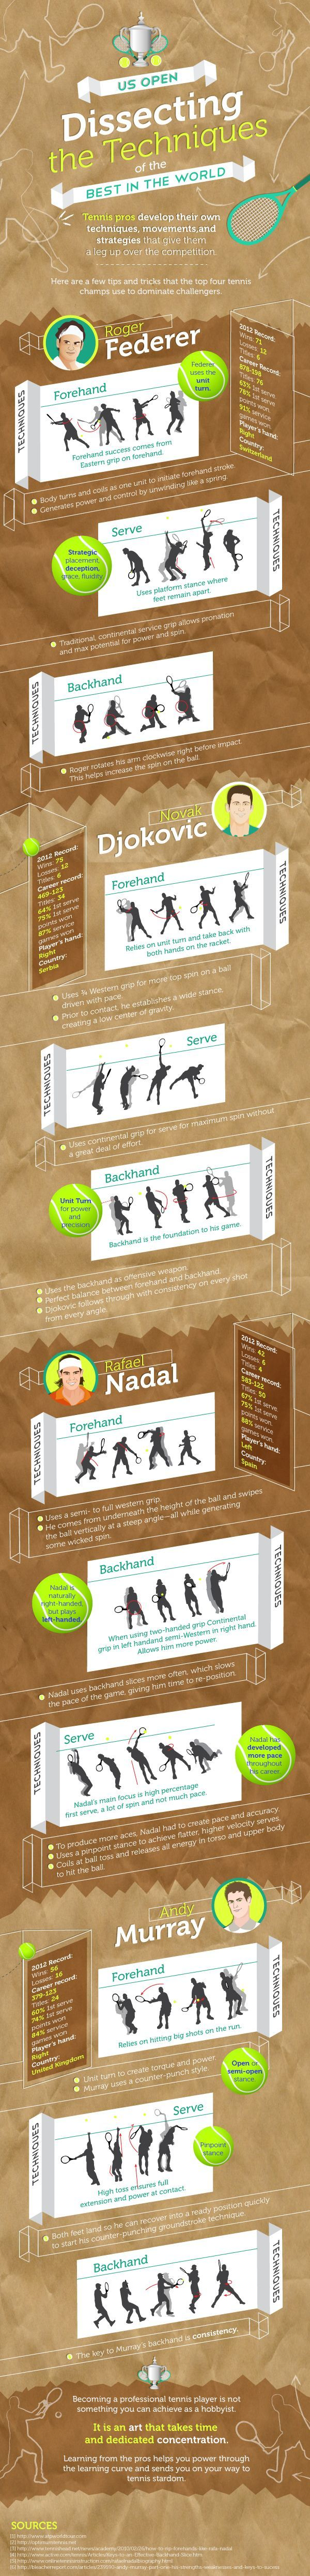 The tennis techniques of the top 4 tennis players: Novak Djokovic, Roger Federer, Rafael Nadal, and Andy Murray | Find more tennis ideas, quotes, tips, and lessons at #lorisgolfshoppe